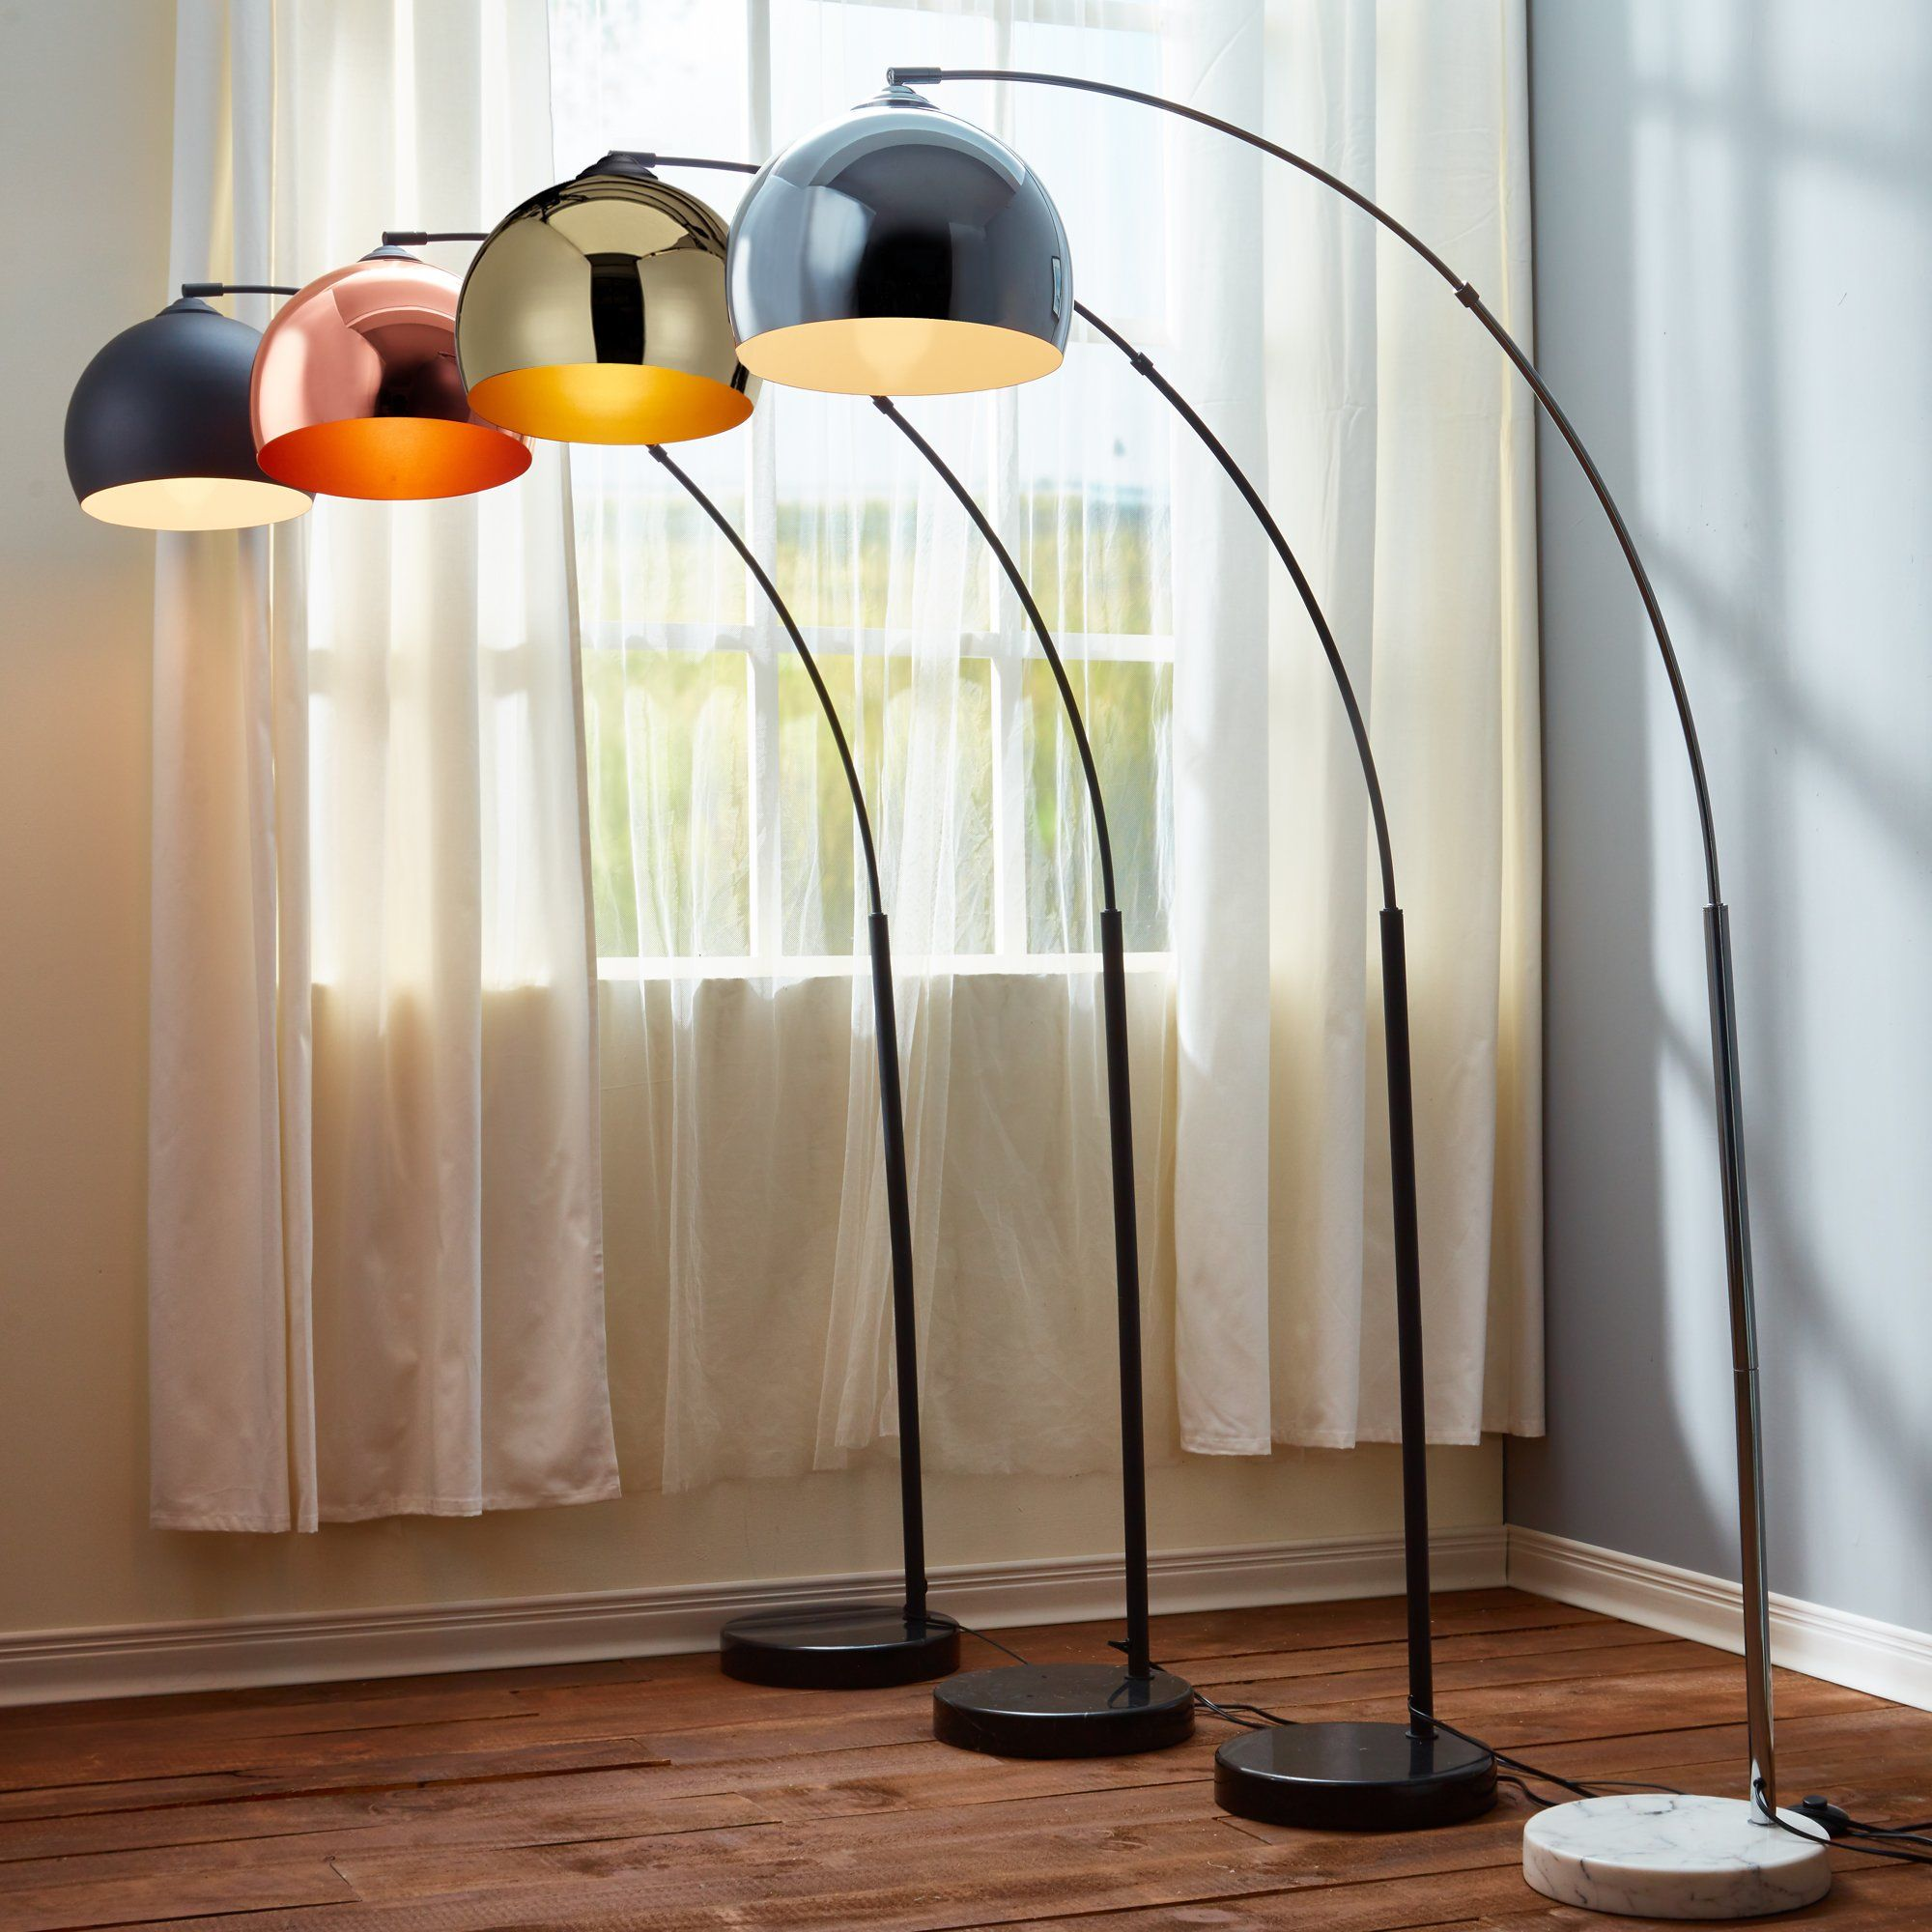 Arquer 66 93 Quot Arched Floor Lamp Bean Palace Aesthetic